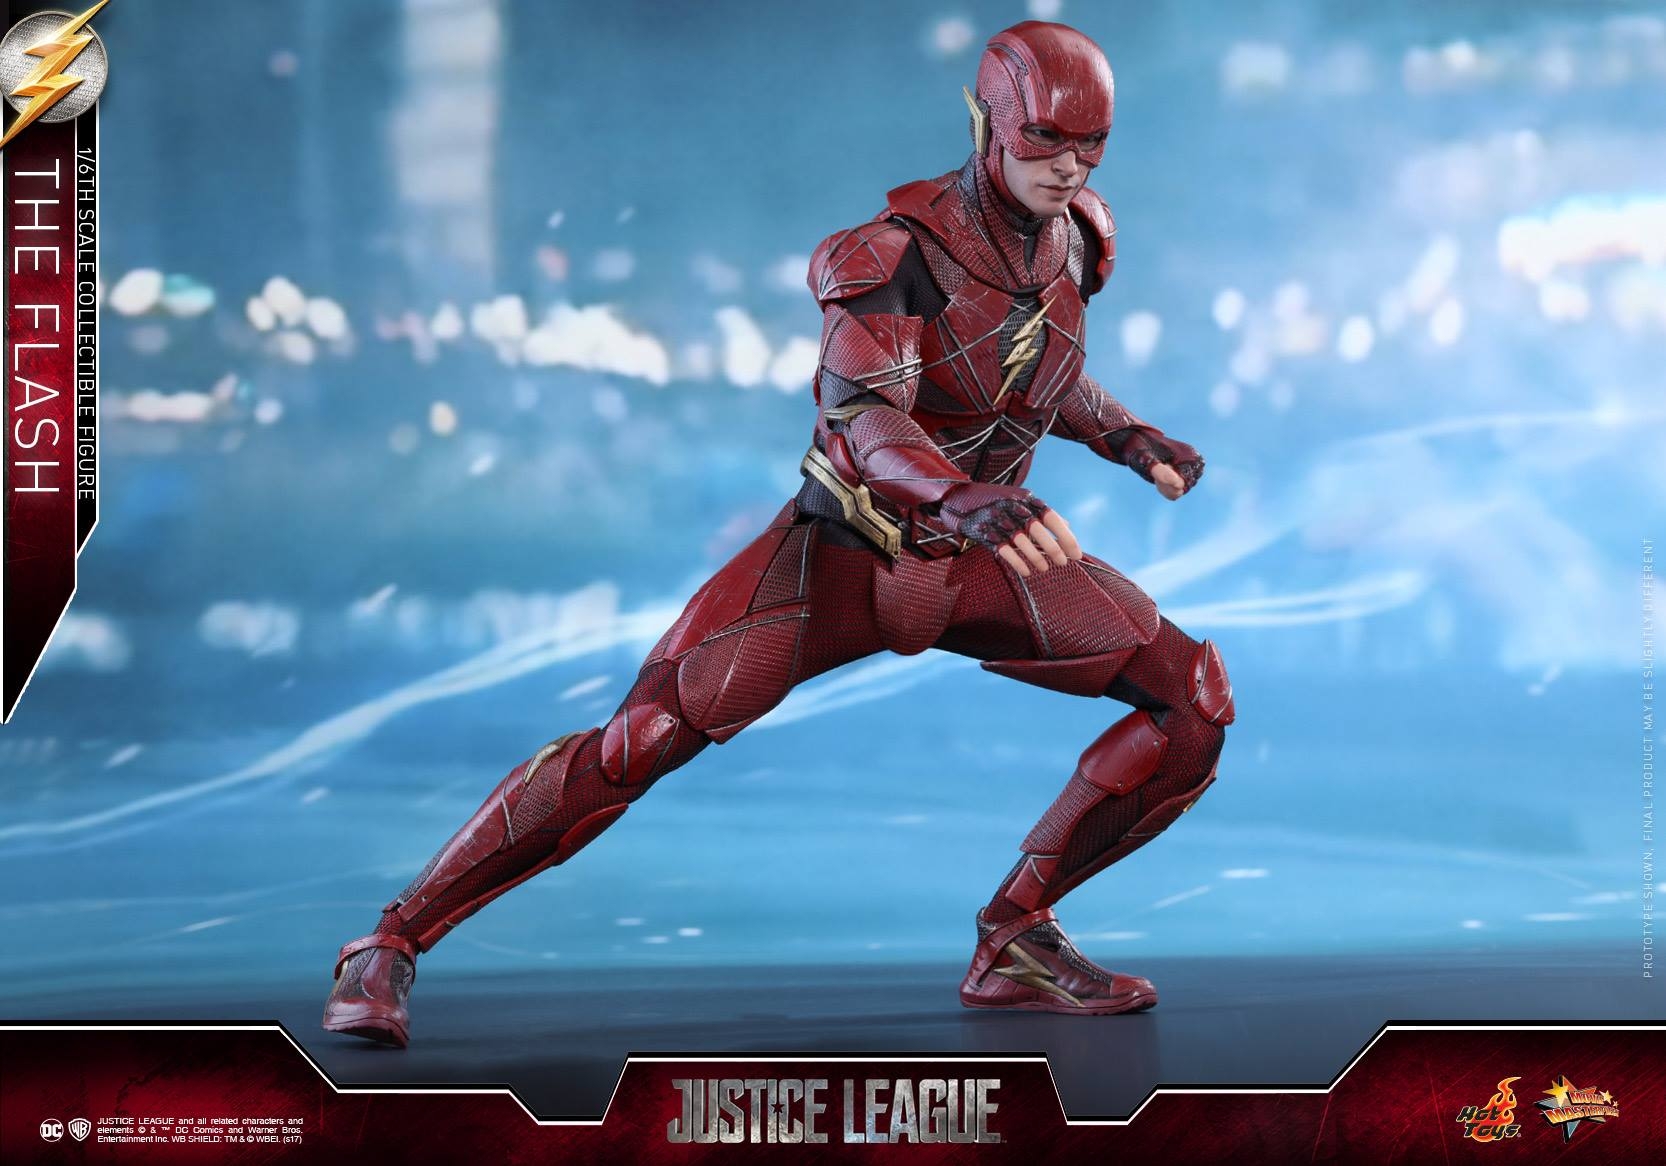 Hot-Toys-Justice-League-The-Flash-009